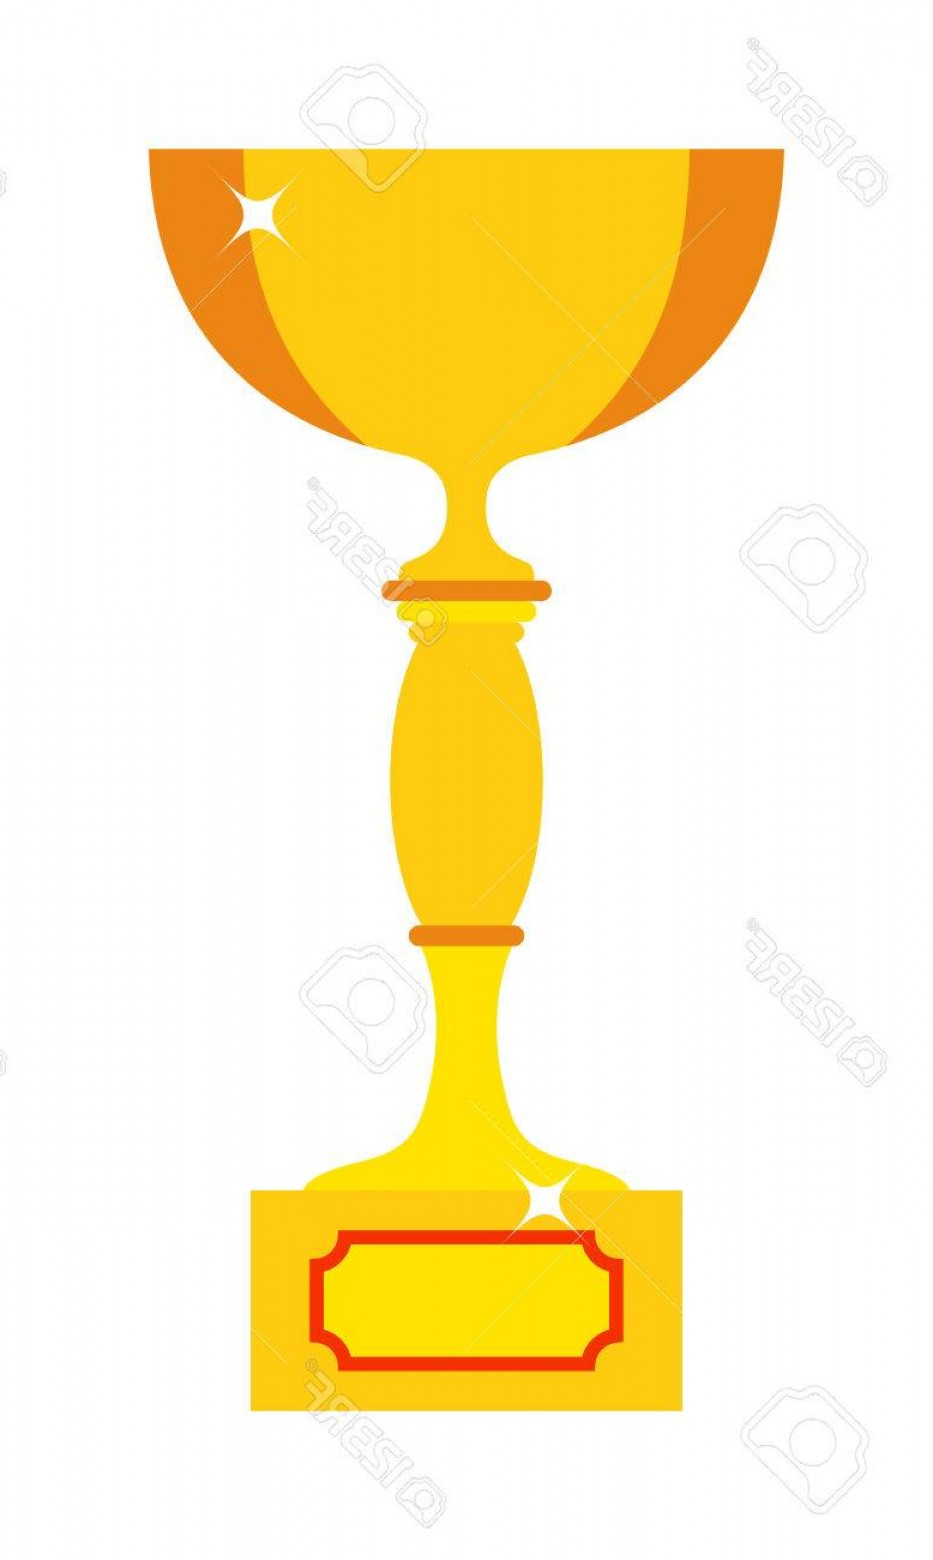 Champion Vector Art: Photostock Vector Vector Trophy Champion Cup Flat Icon Champion Cup Winner Trophy Award And Victory Prize Champion Cup